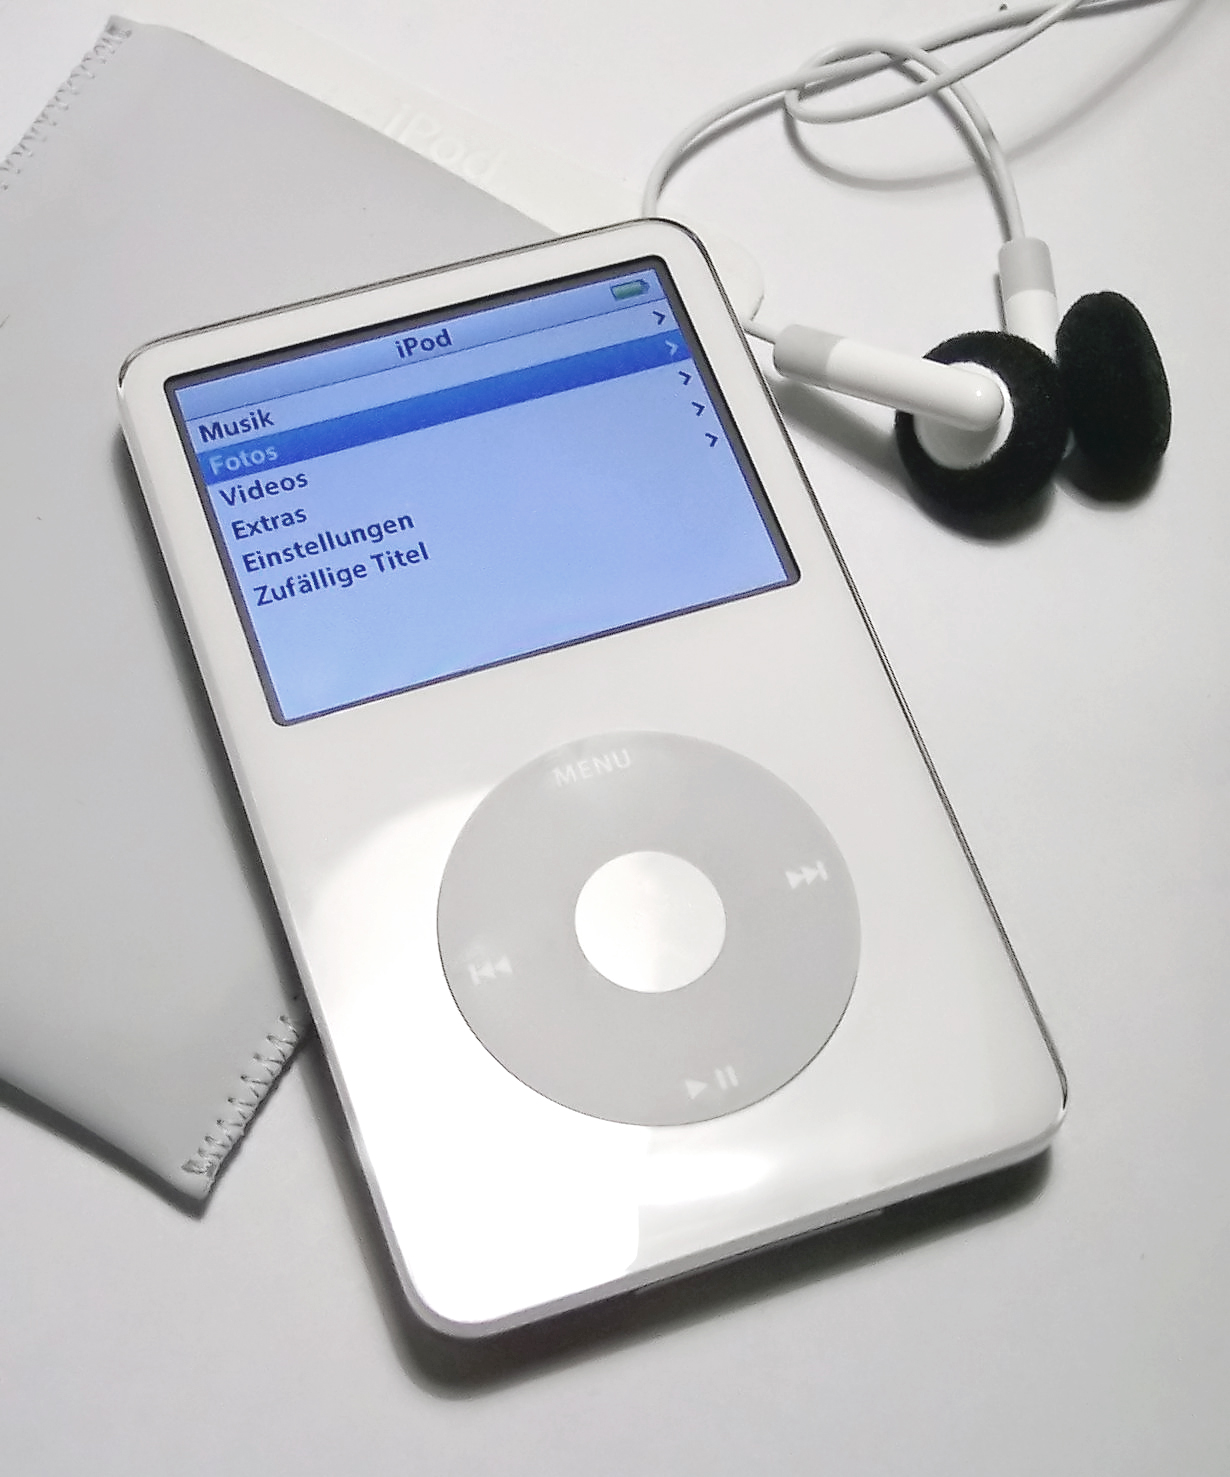 5th Gen iPod by Stahlkocher